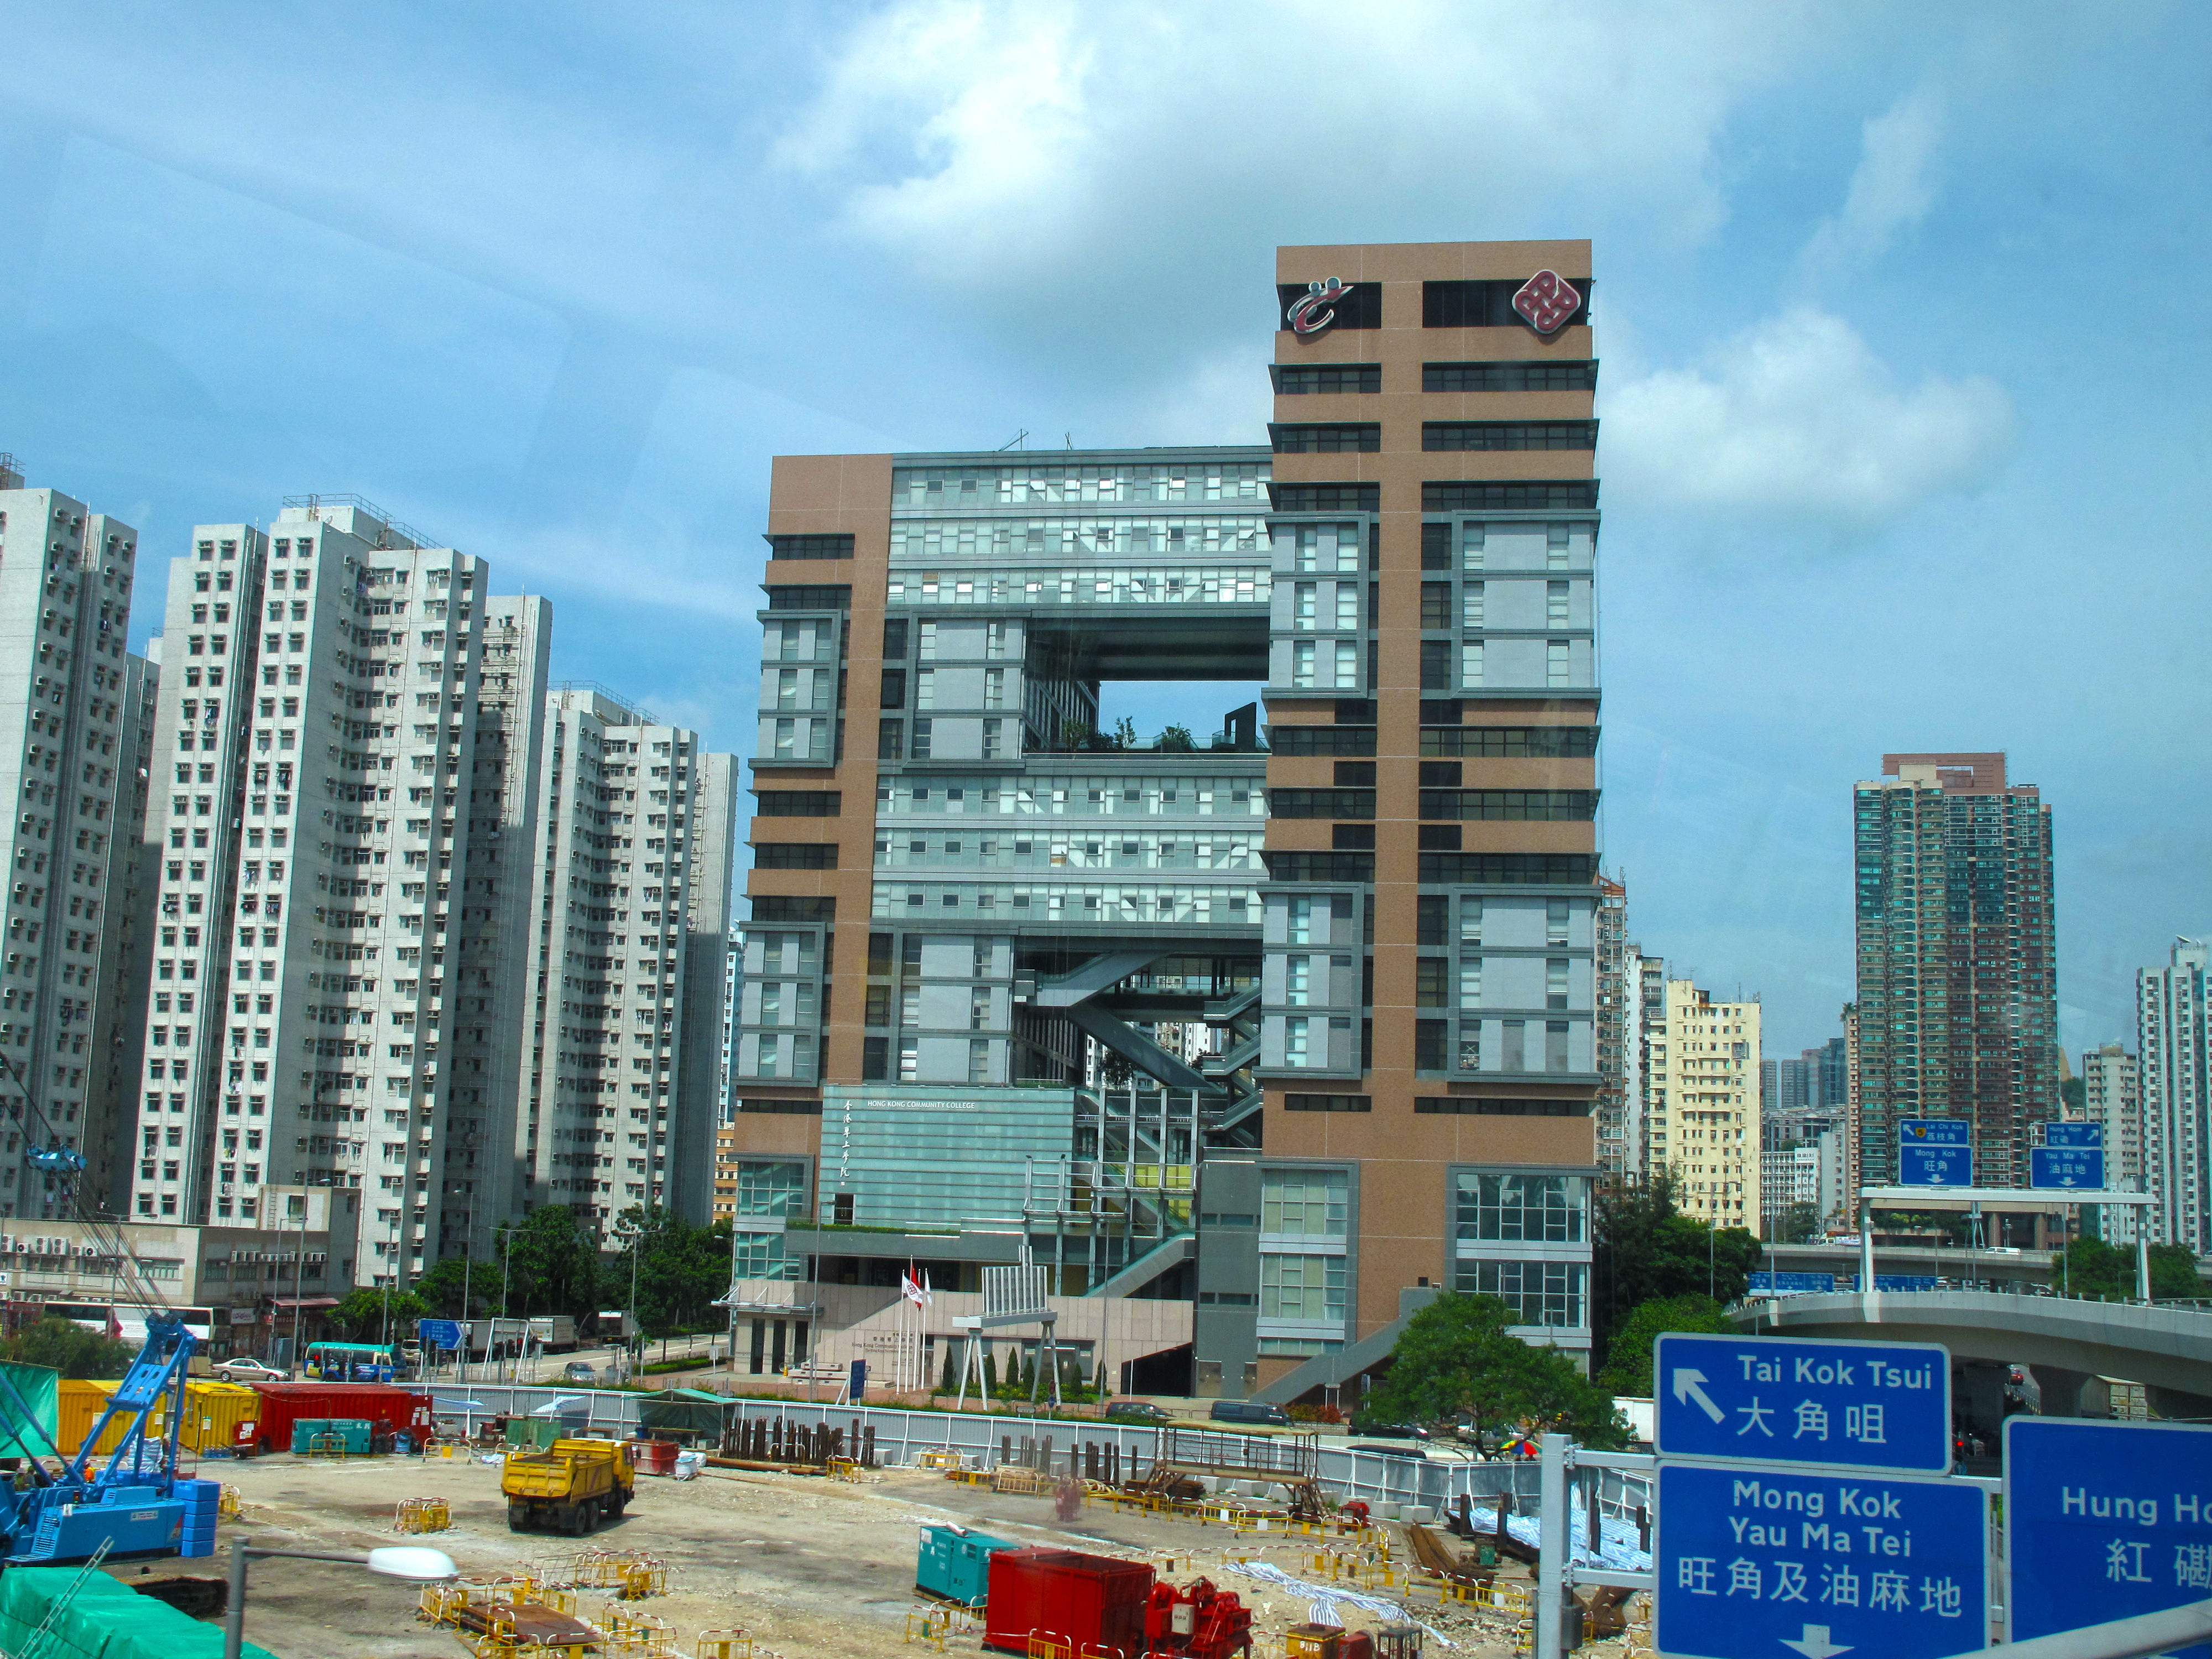 Hong Kong College of Engineering